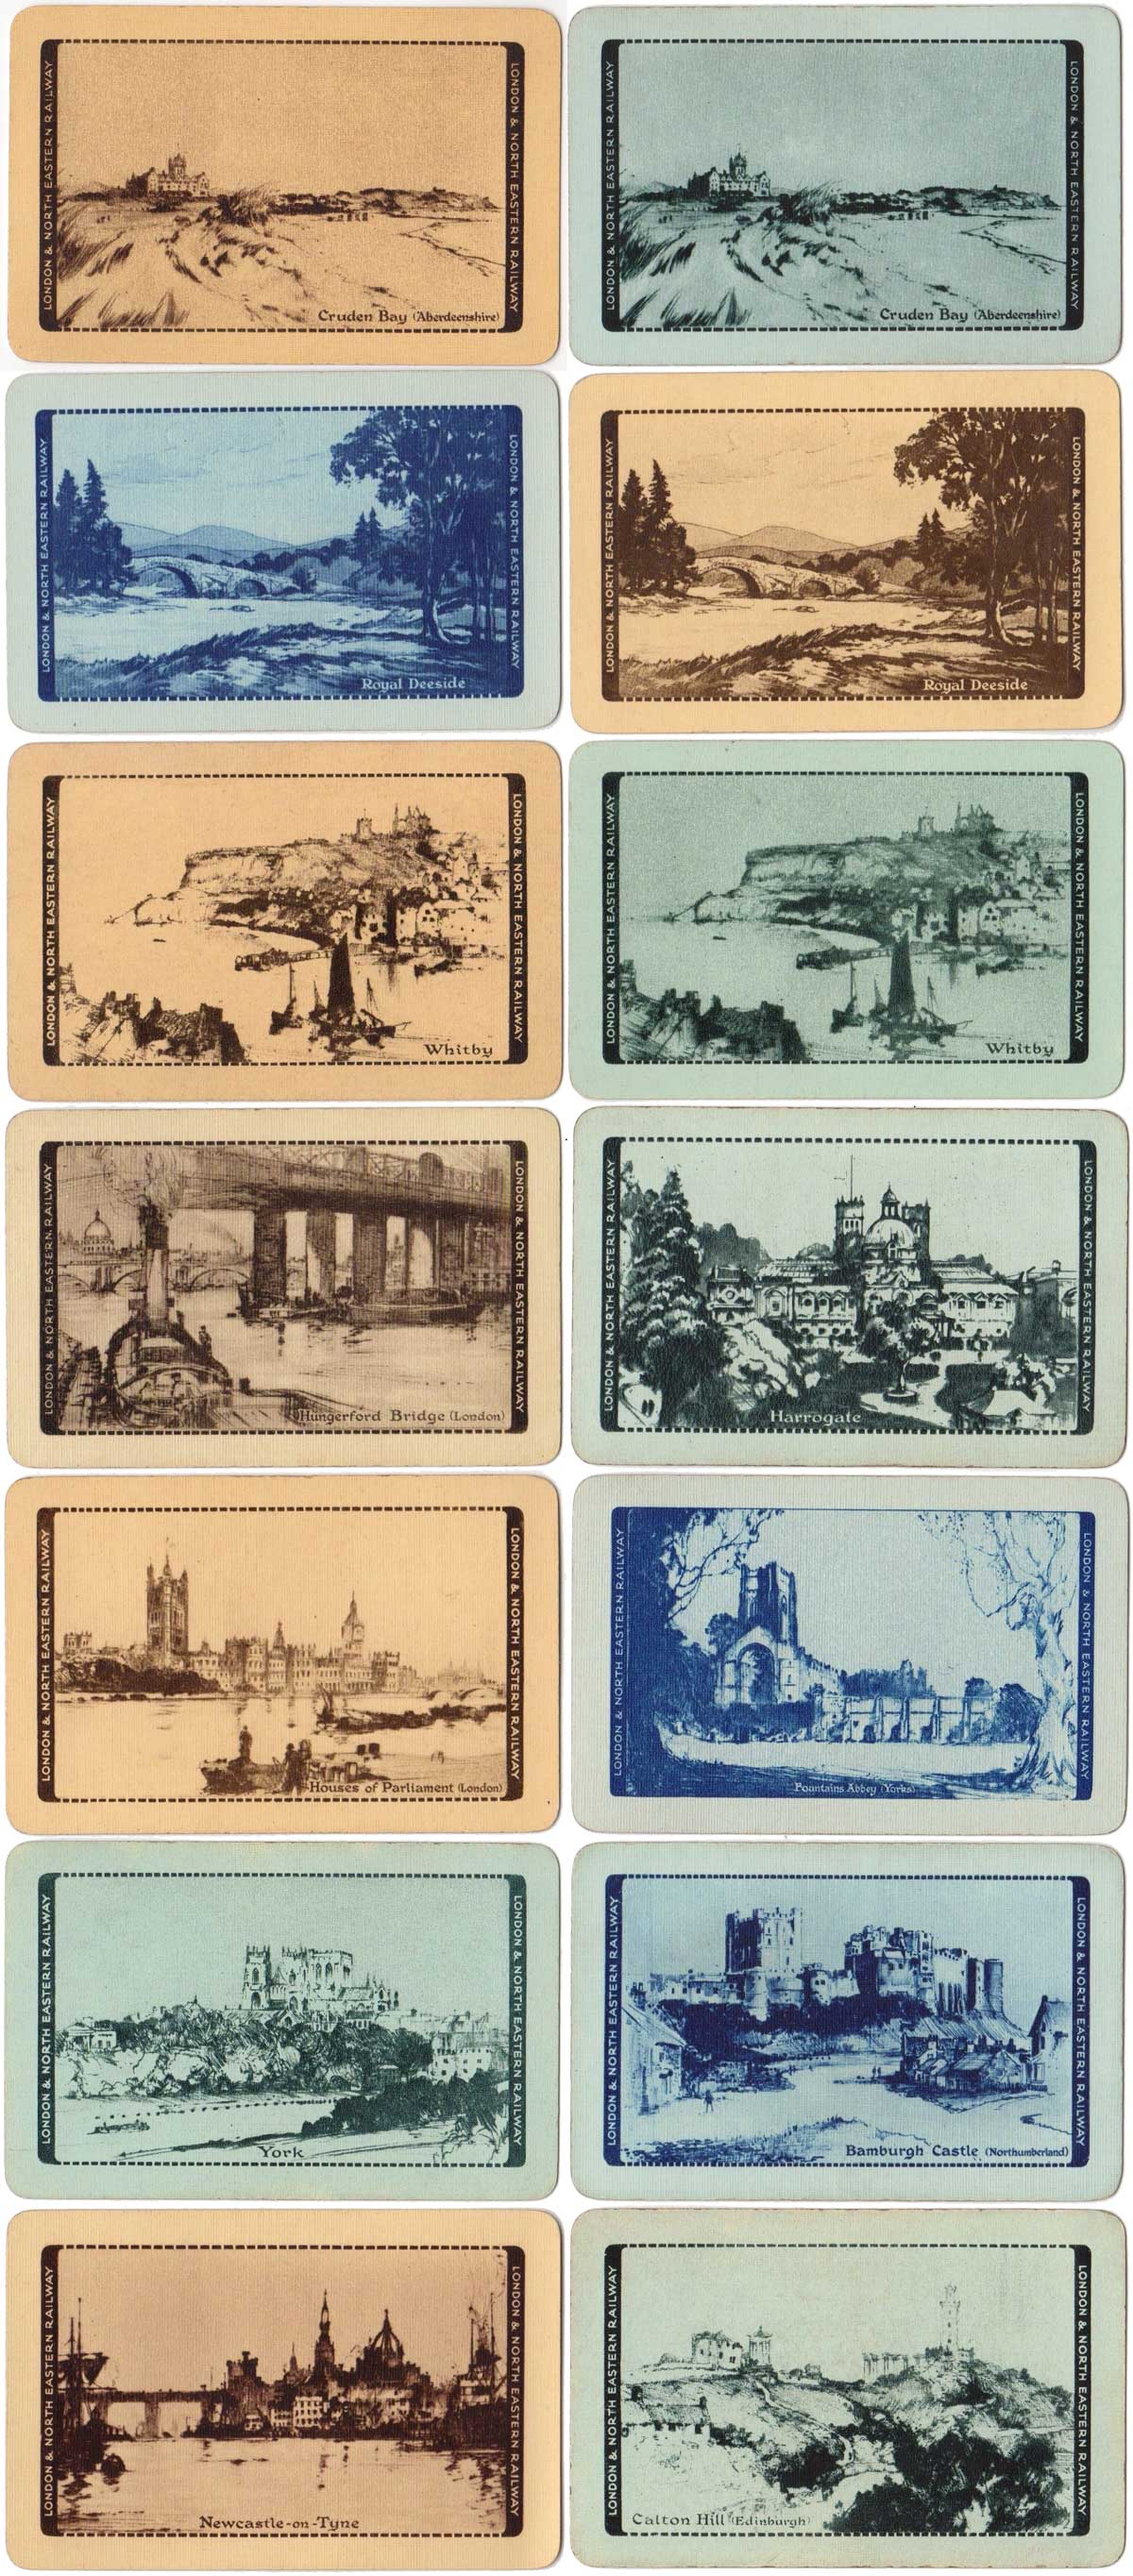 'Beautiful Britain' backs sponsored by the London and North Eastern Railway printed in monochrome, 1927-29